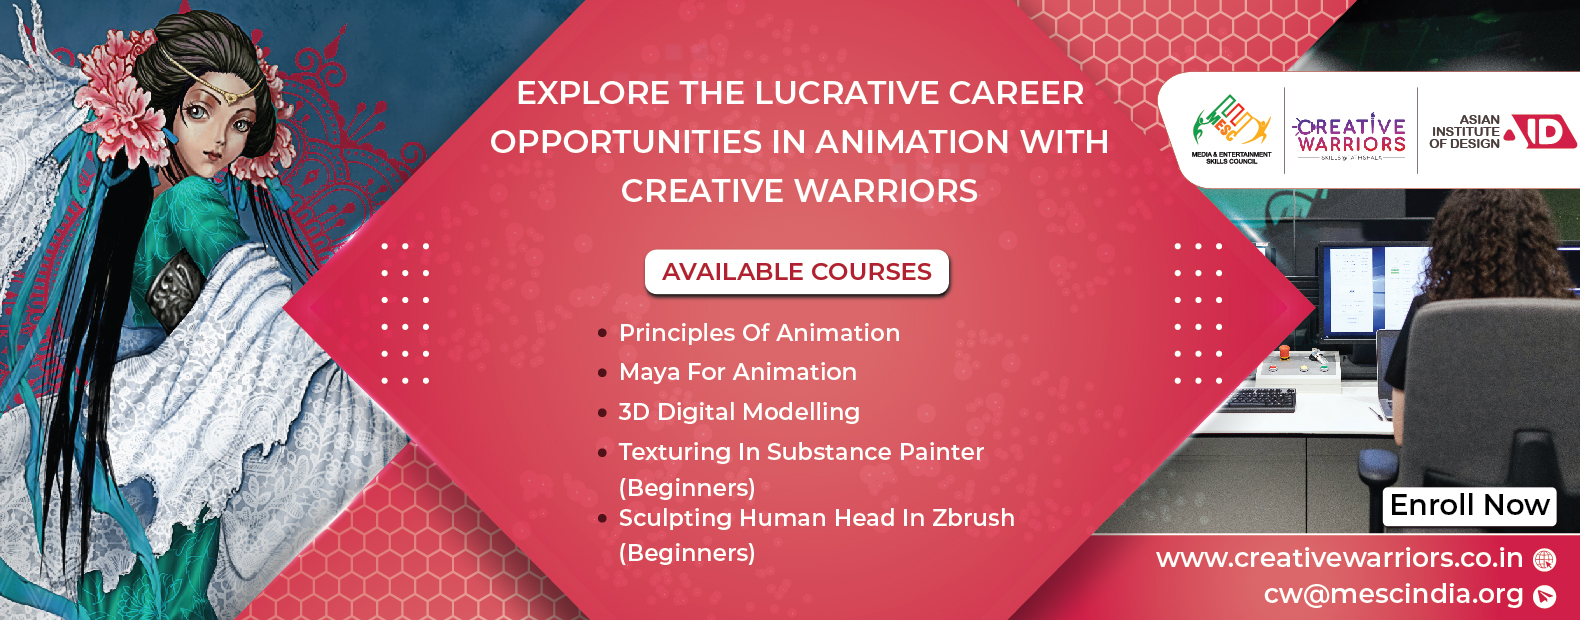 EXPANDS YOUR CAREER PROSPECTS WITH